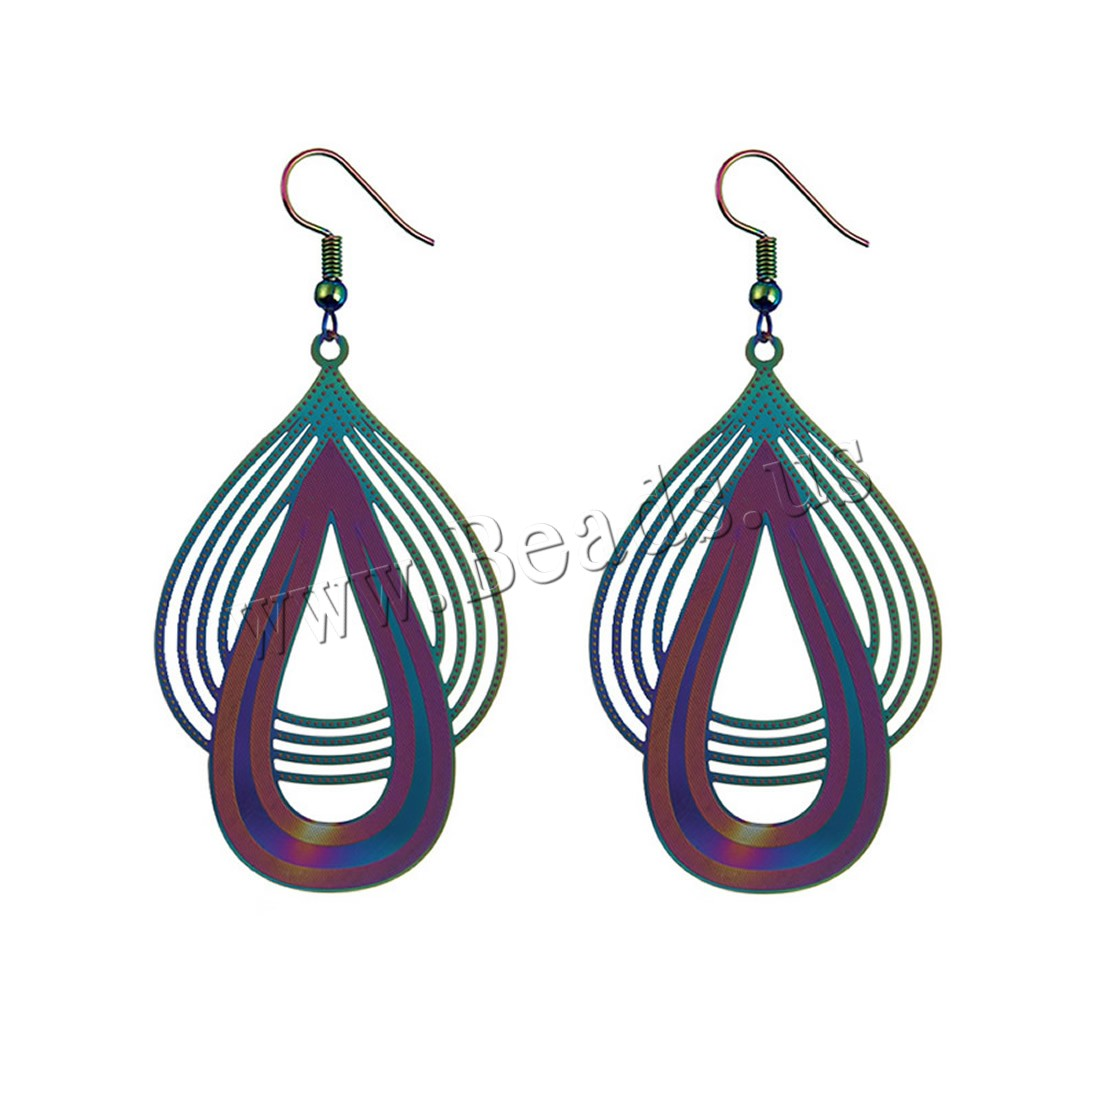 Buy Stainless Steel Drop Earring iron earring hook plated painted & woman colors choice nickel lead & cadmium free 55x35mm Sold Pair